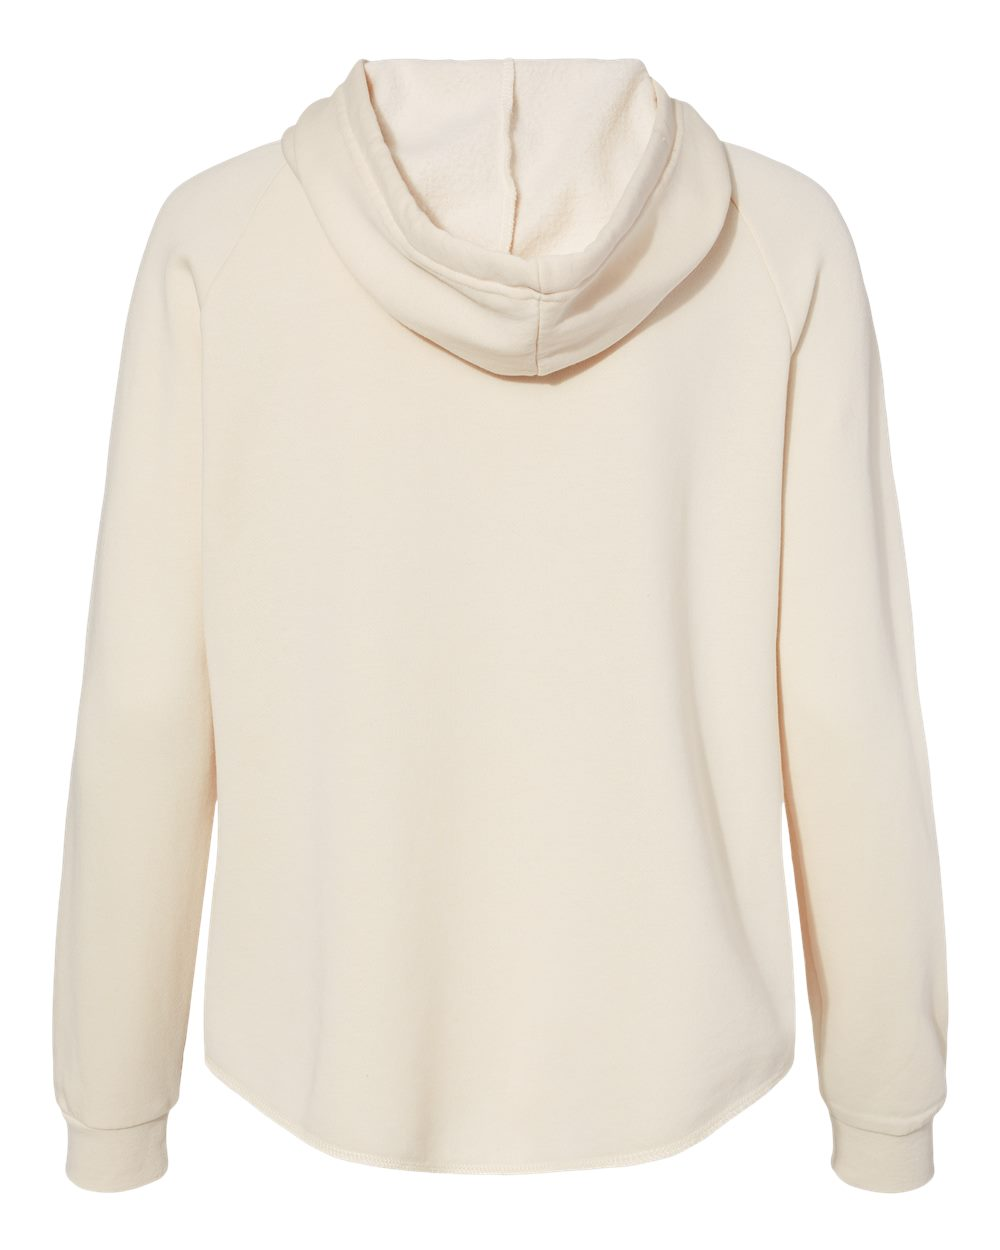 Independent-Trading-Co-Women-039-s-Wave-Wash-Full-Zip-Hooded-Sweatshirt-PRM2500Z thumbnail 10